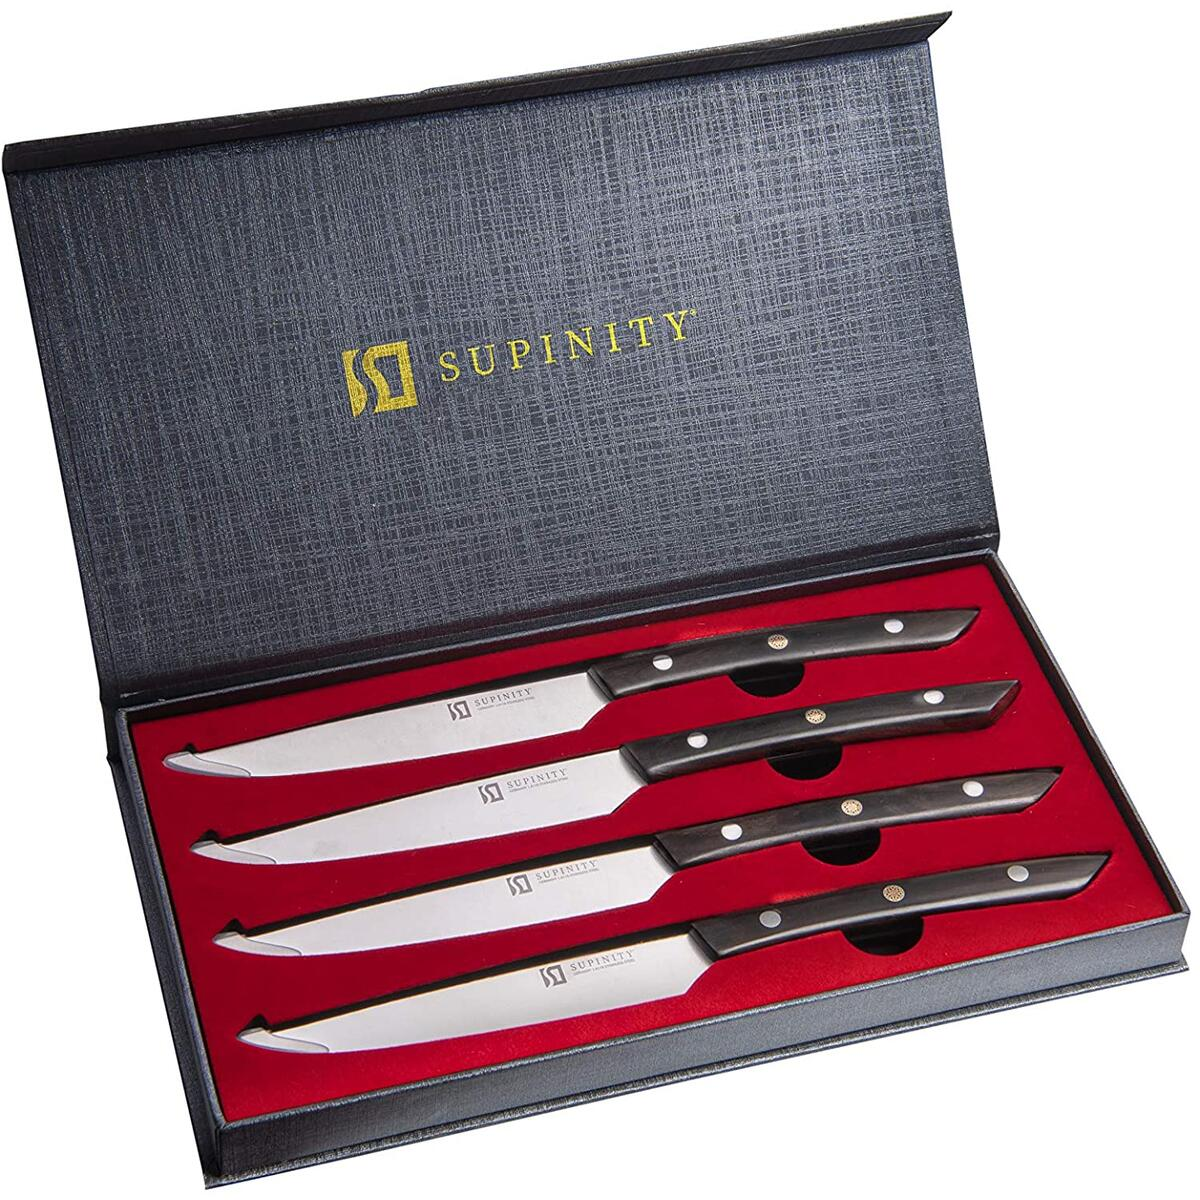 Supinity Steak Knives Set of 4 - Full Tang German Stainless Steel